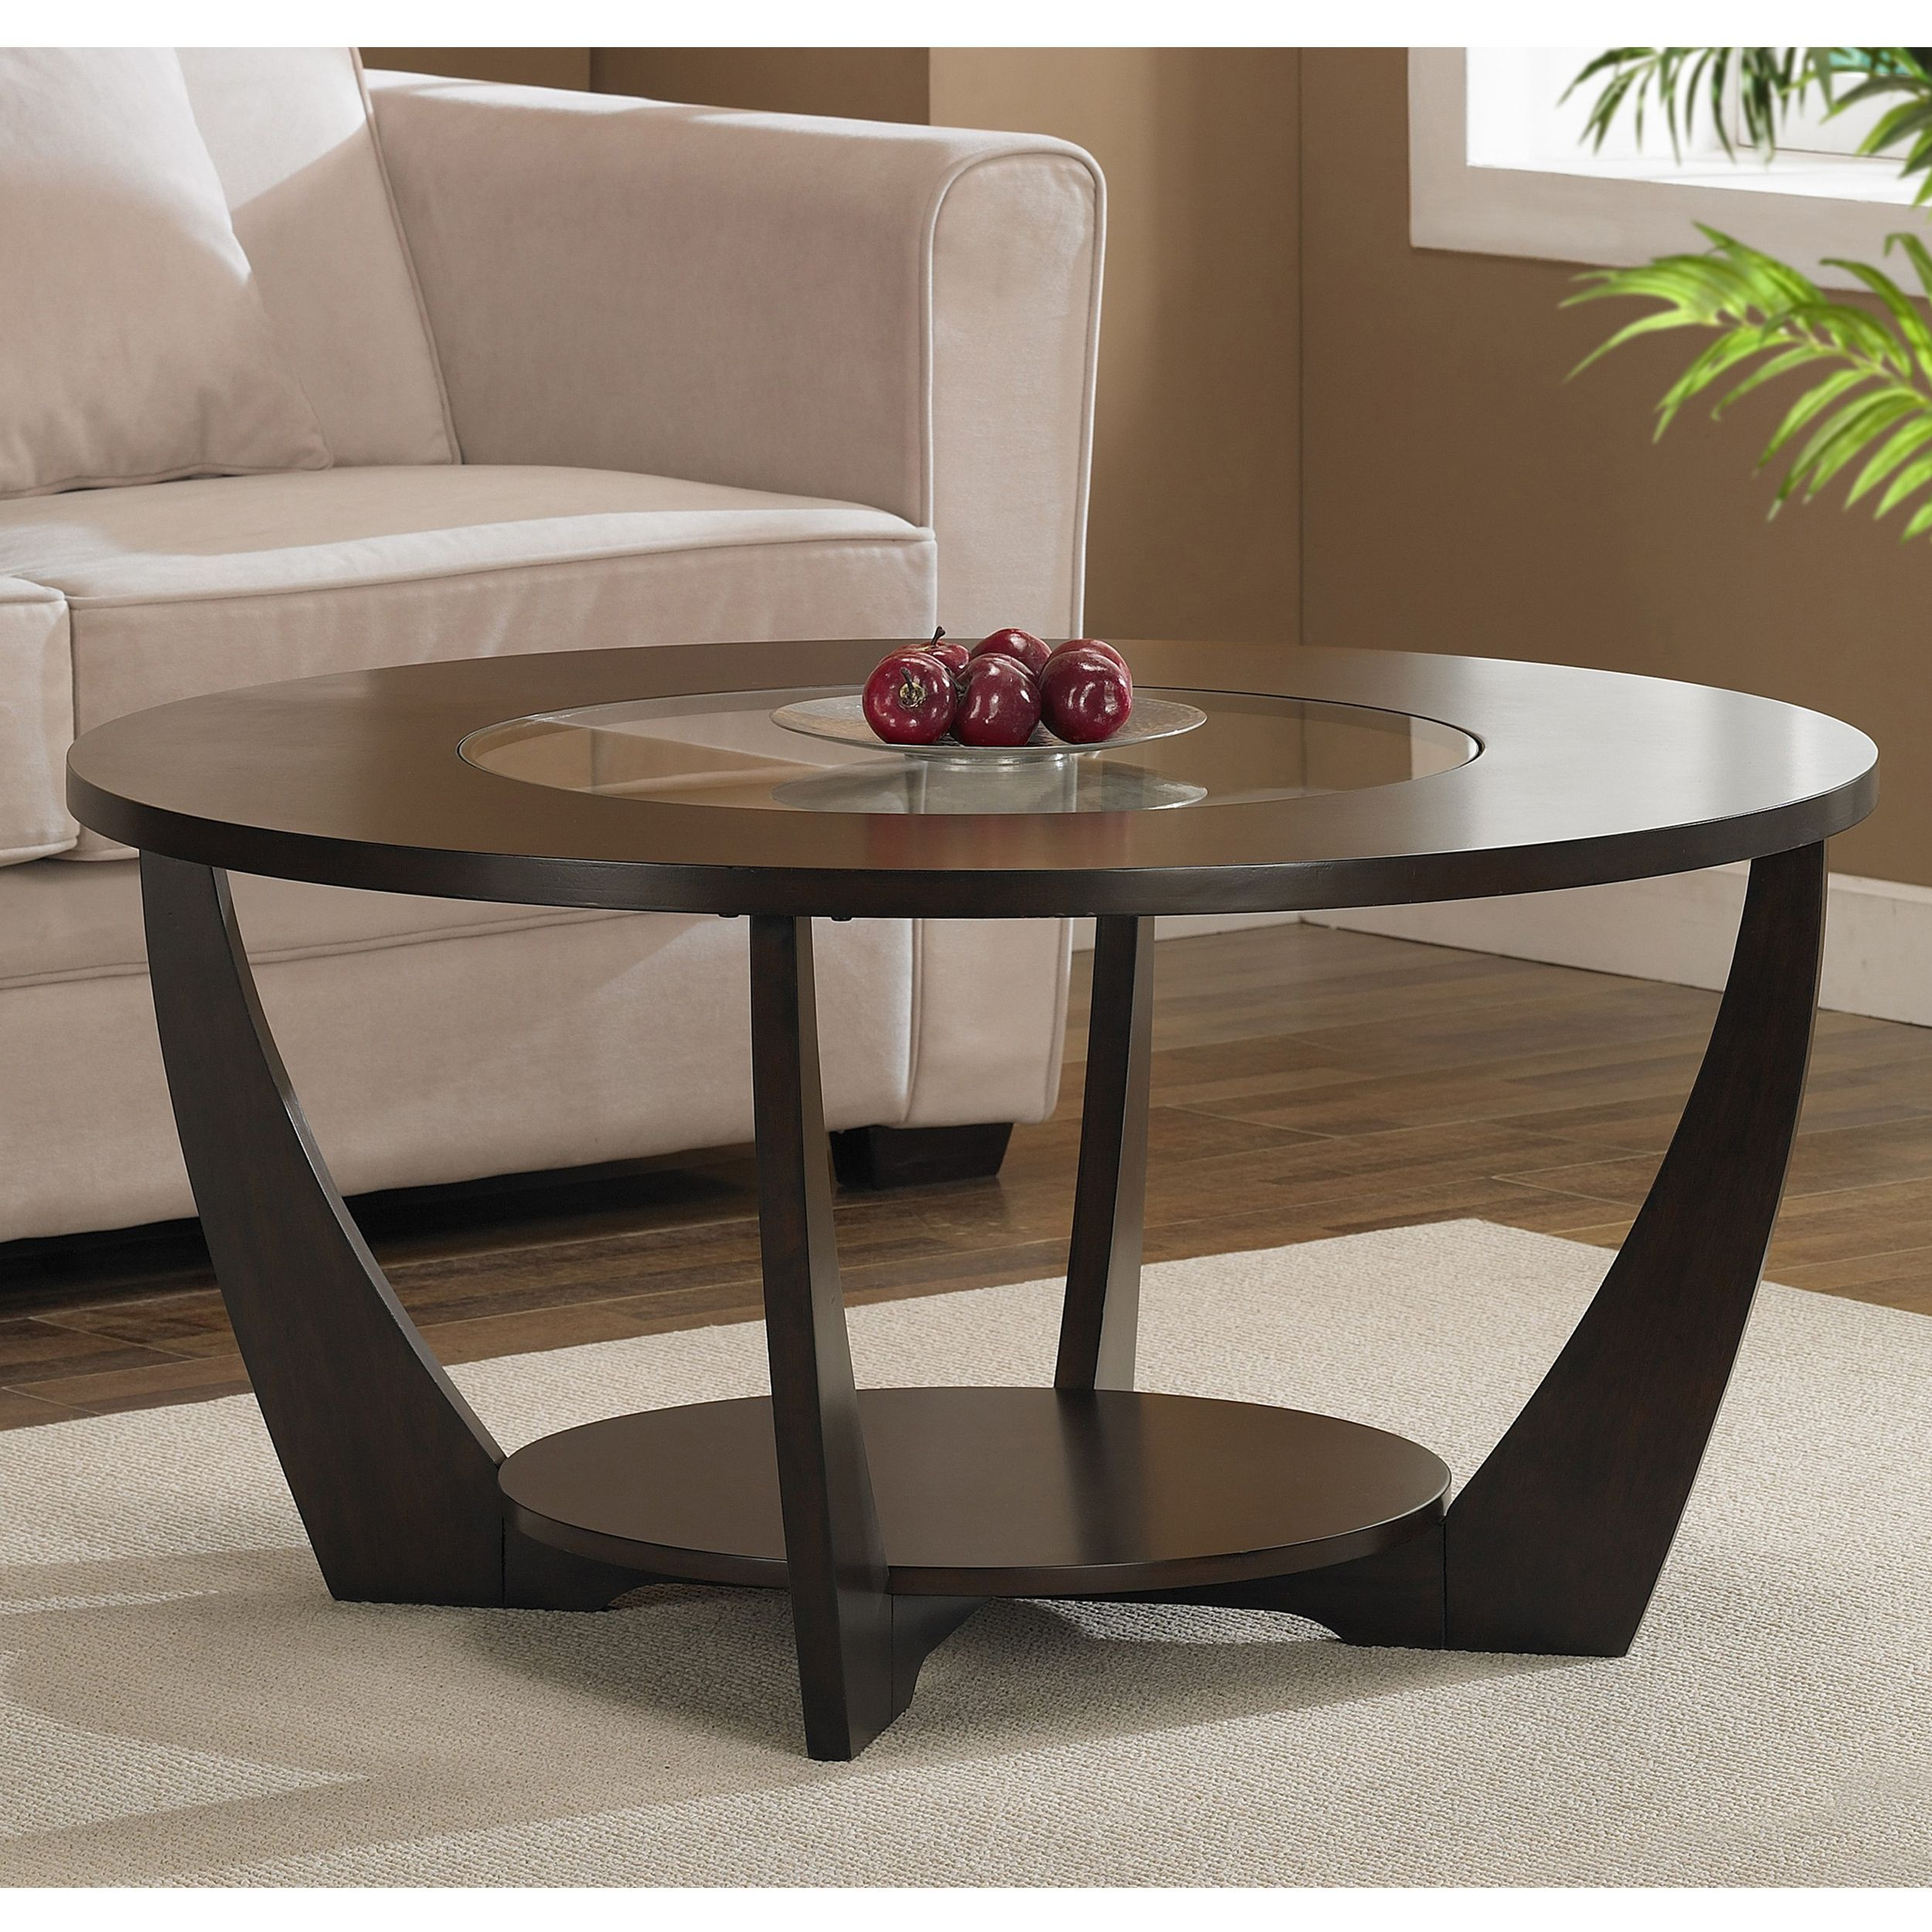 Update The Look Of Your Living Room With This Elegant Round Espresso Coffee Table